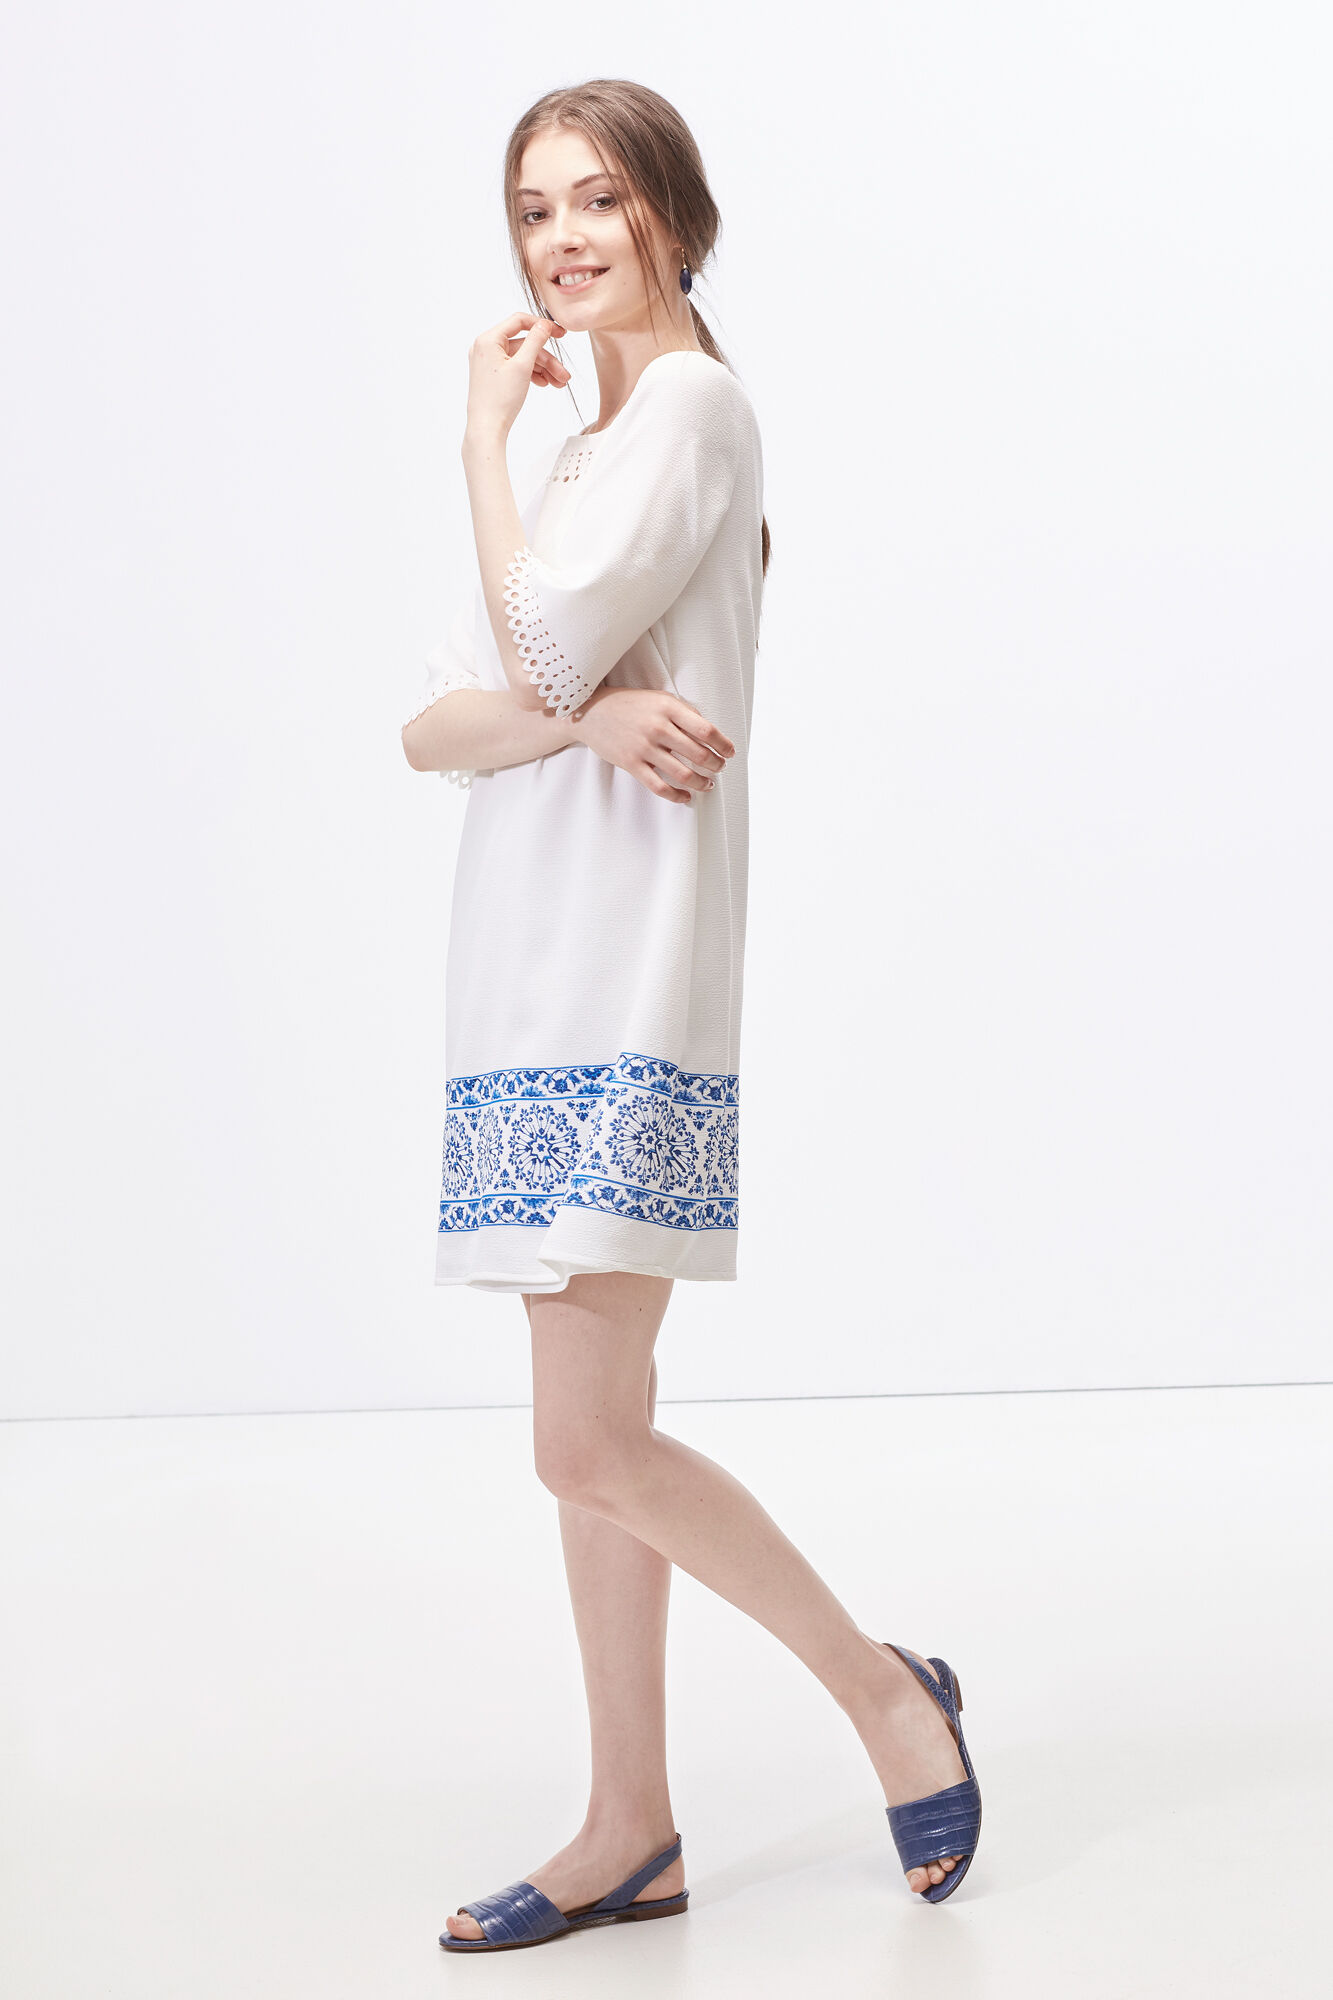 Ropa De Mujer Outlet Fifty Ropa Outlet qPUEHqwf